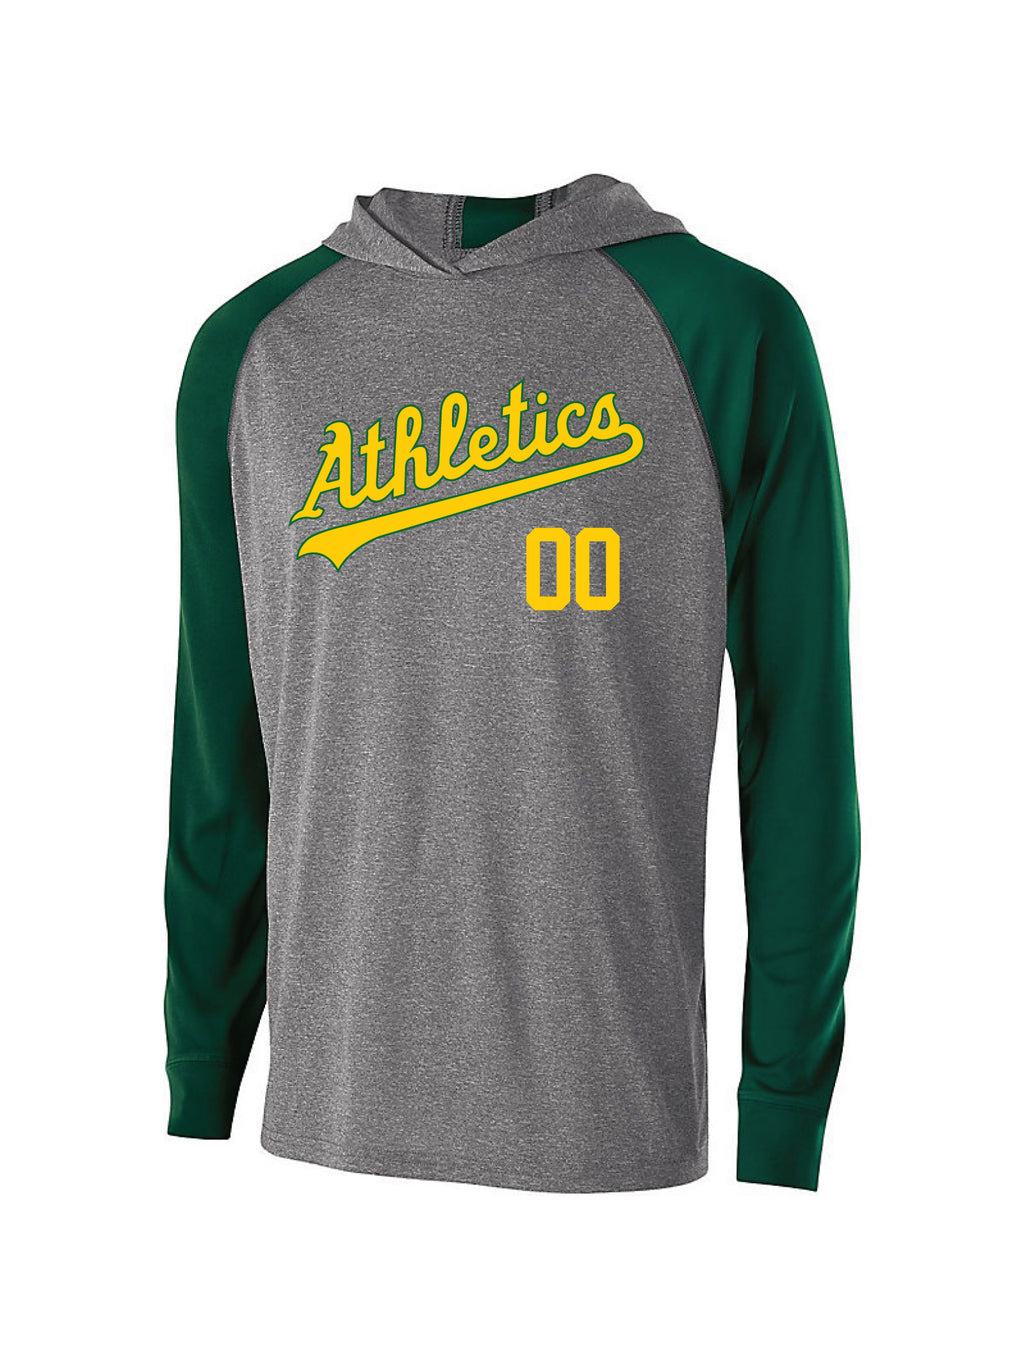 A's Light Weight Holloway Performance Hoodie